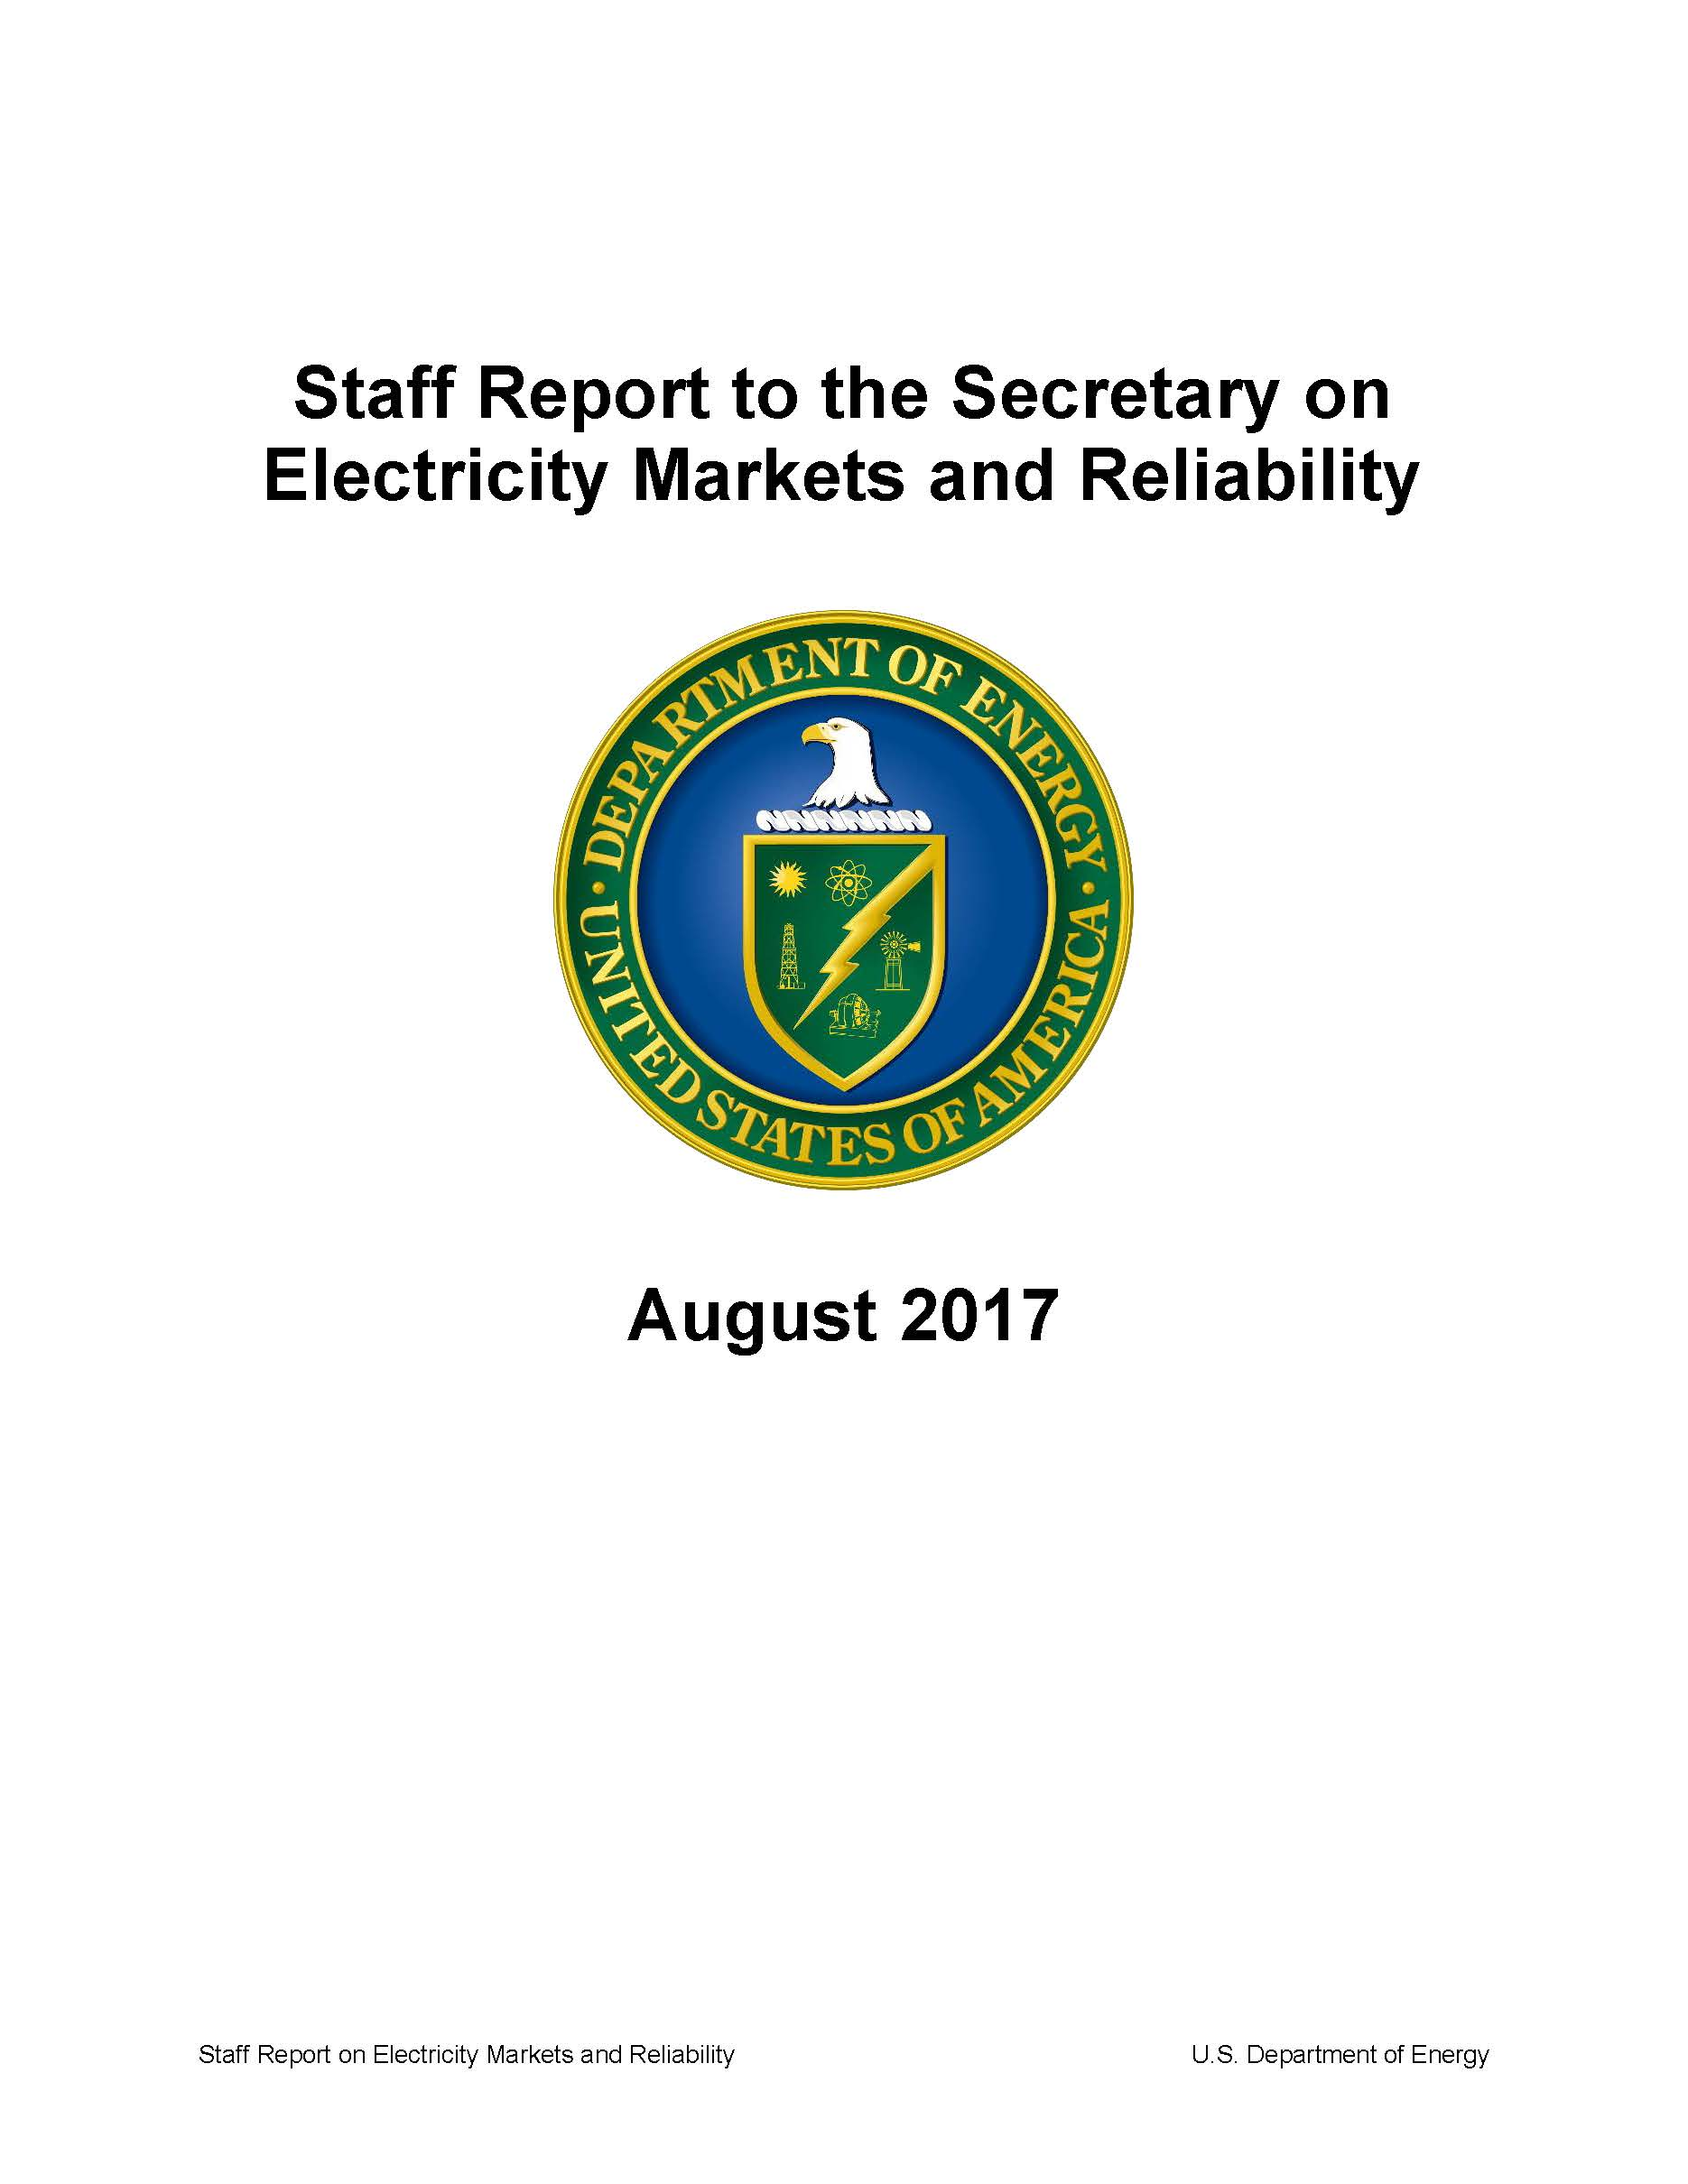 DOE Staff Finds NSR Contributed to Loss of Baseload Generation – Staff Report